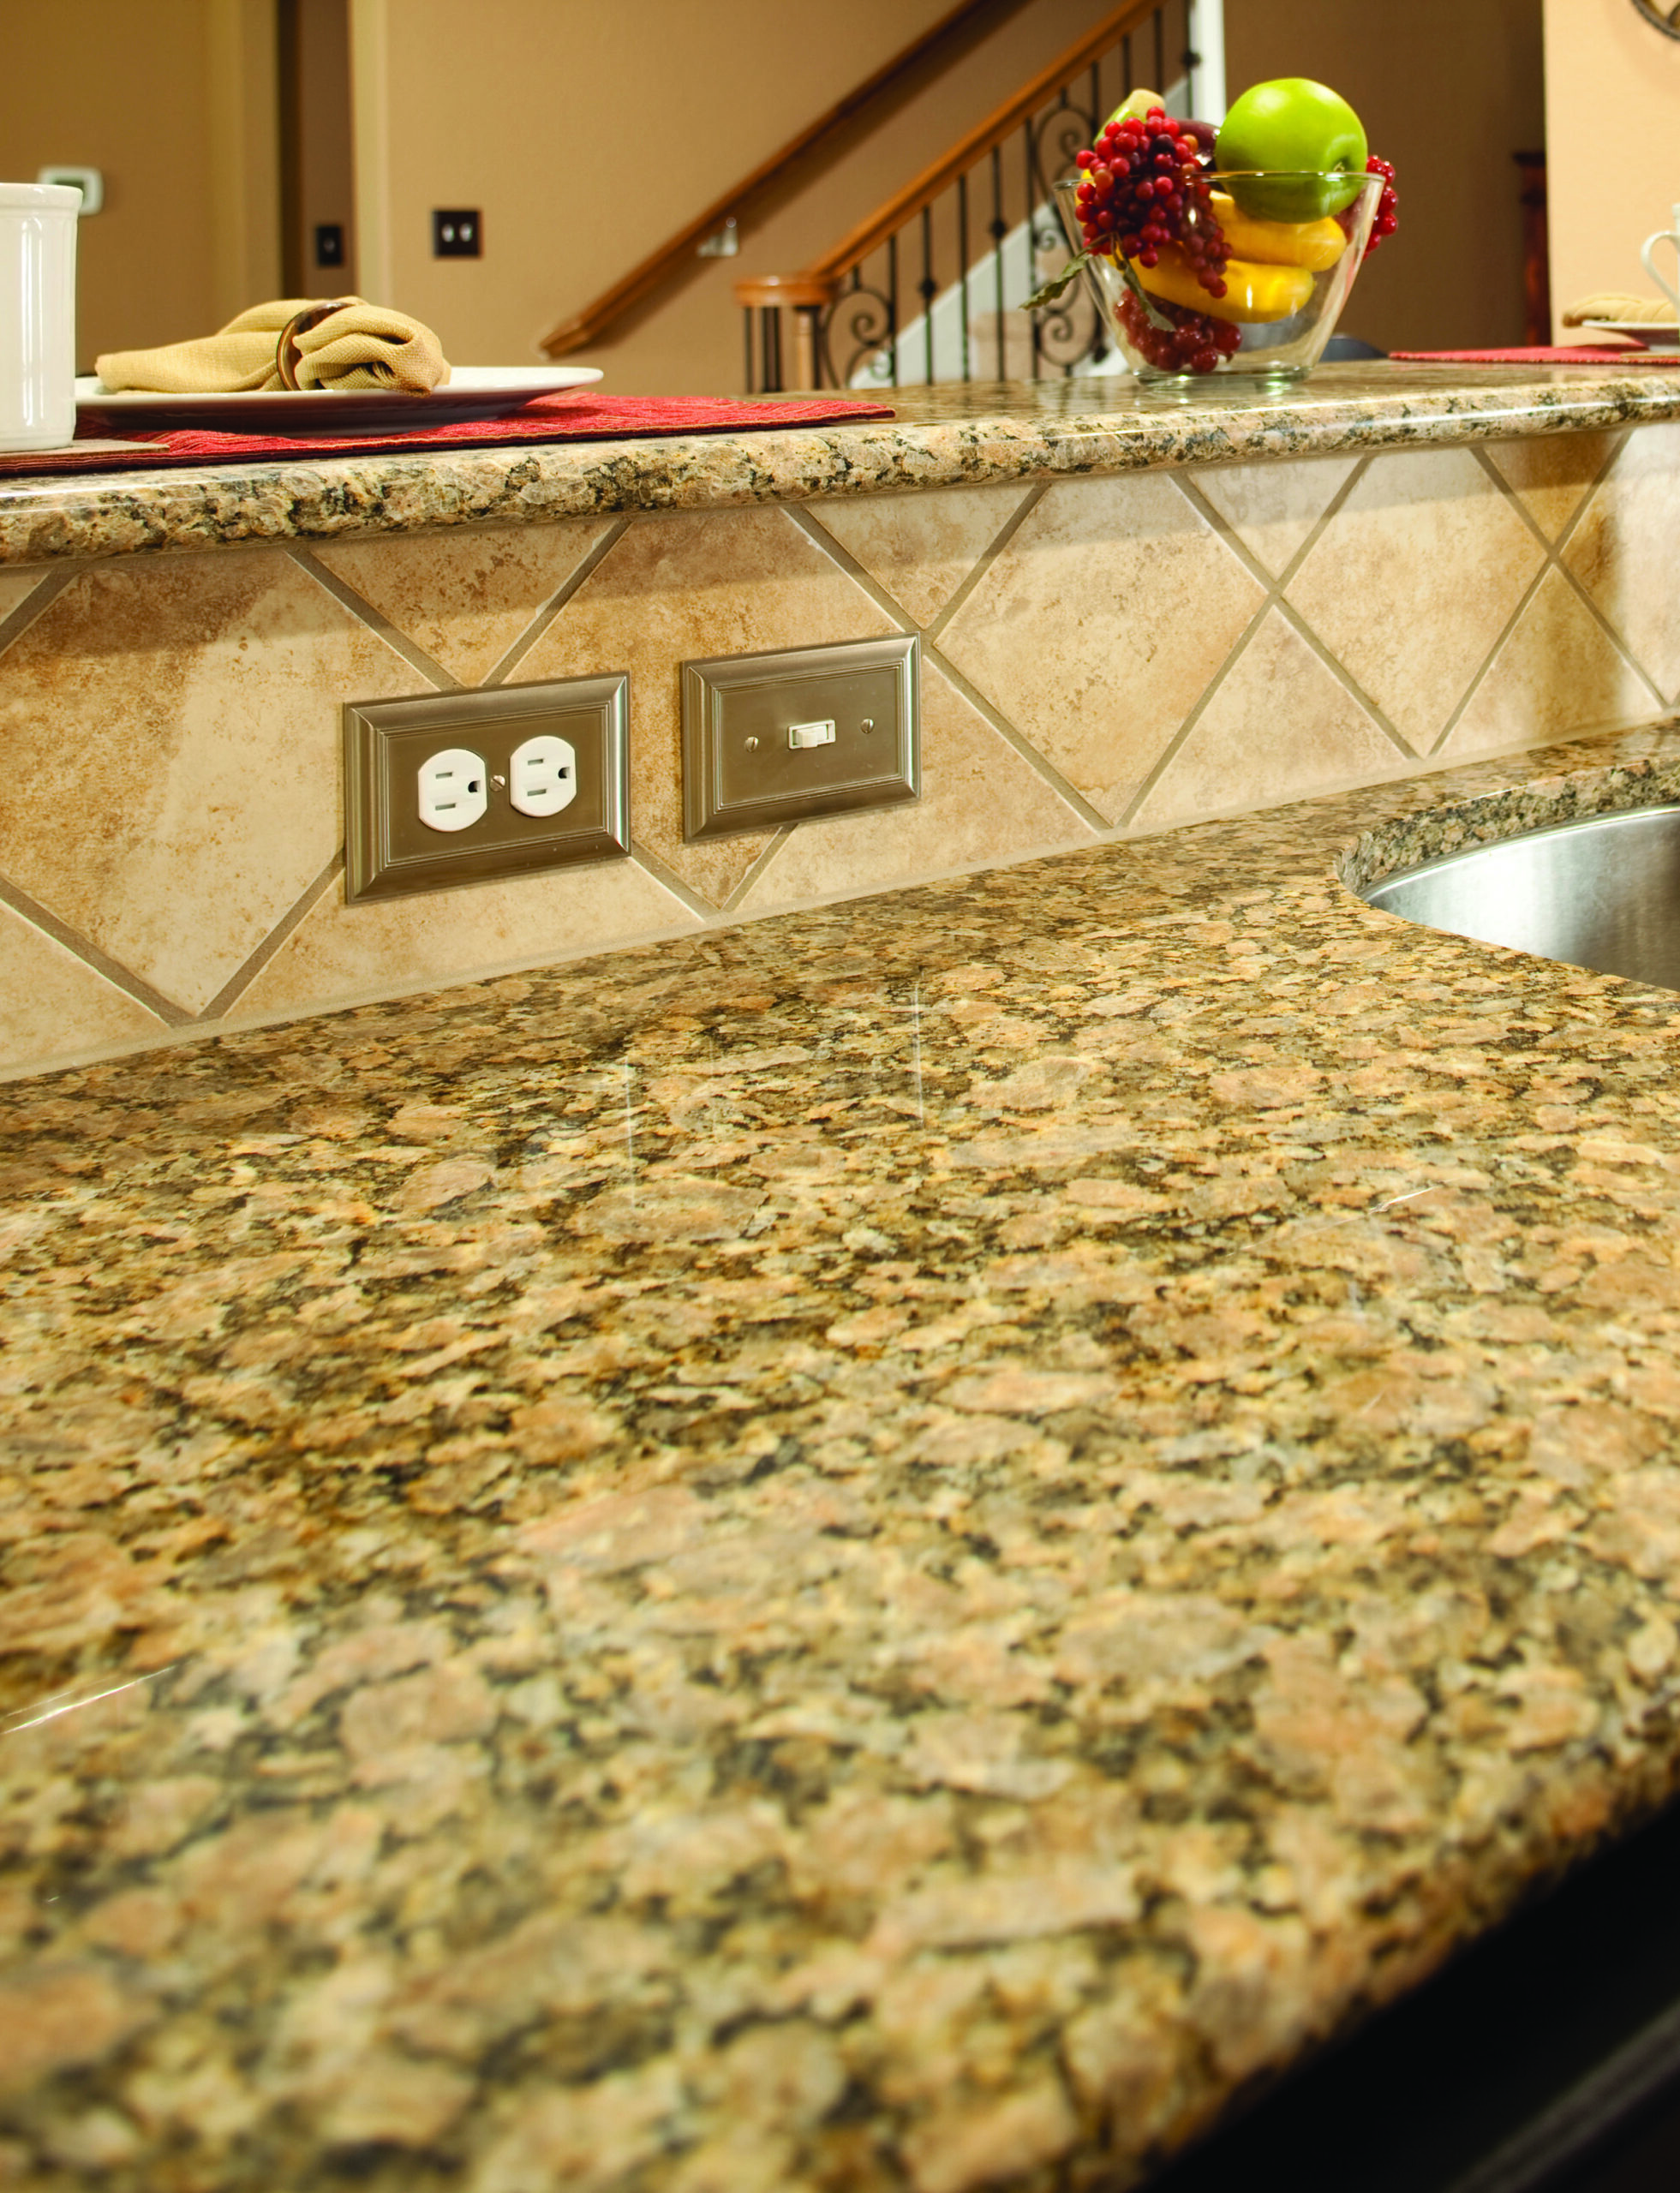 Outlets in kitchens and bathrooms — Plug into the details   ICC